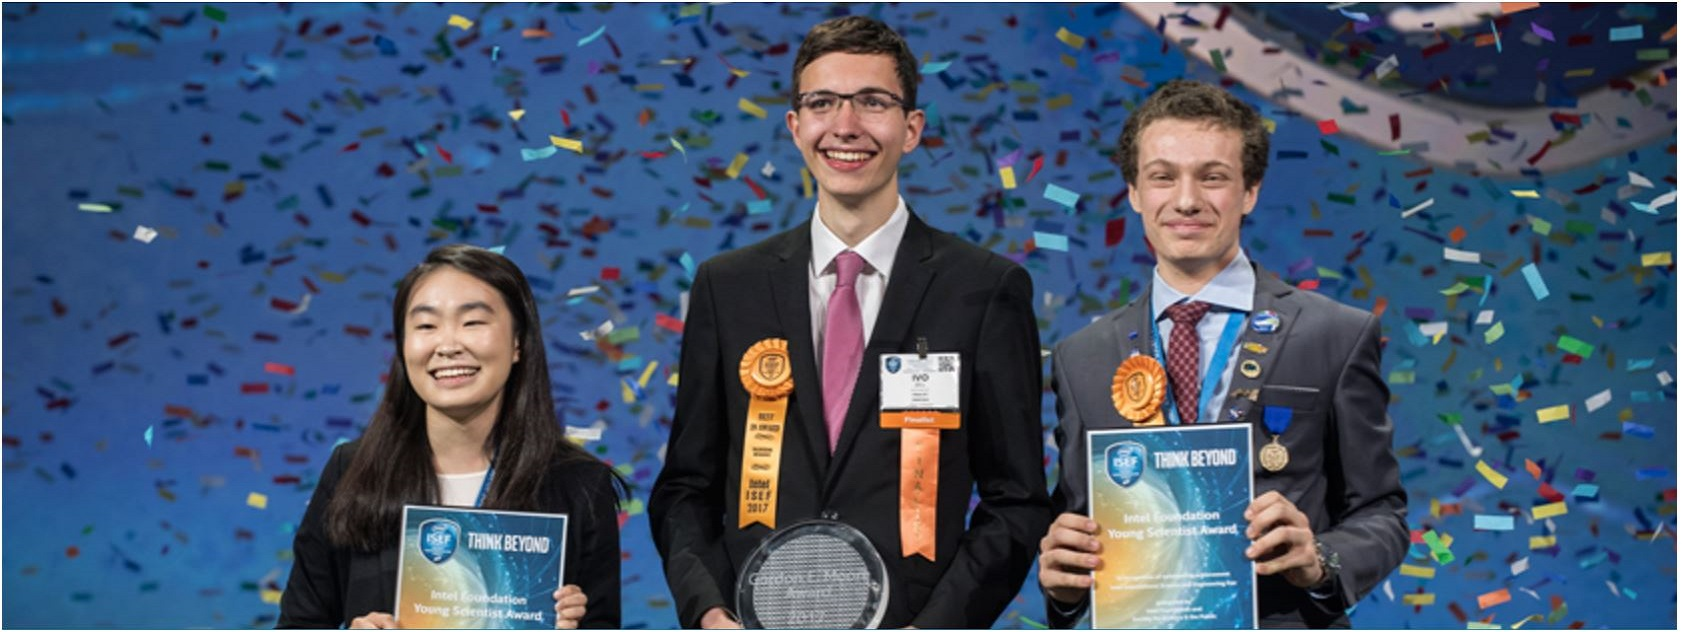 Intel ISEF 2017 Awards. Be a STEM Winner!